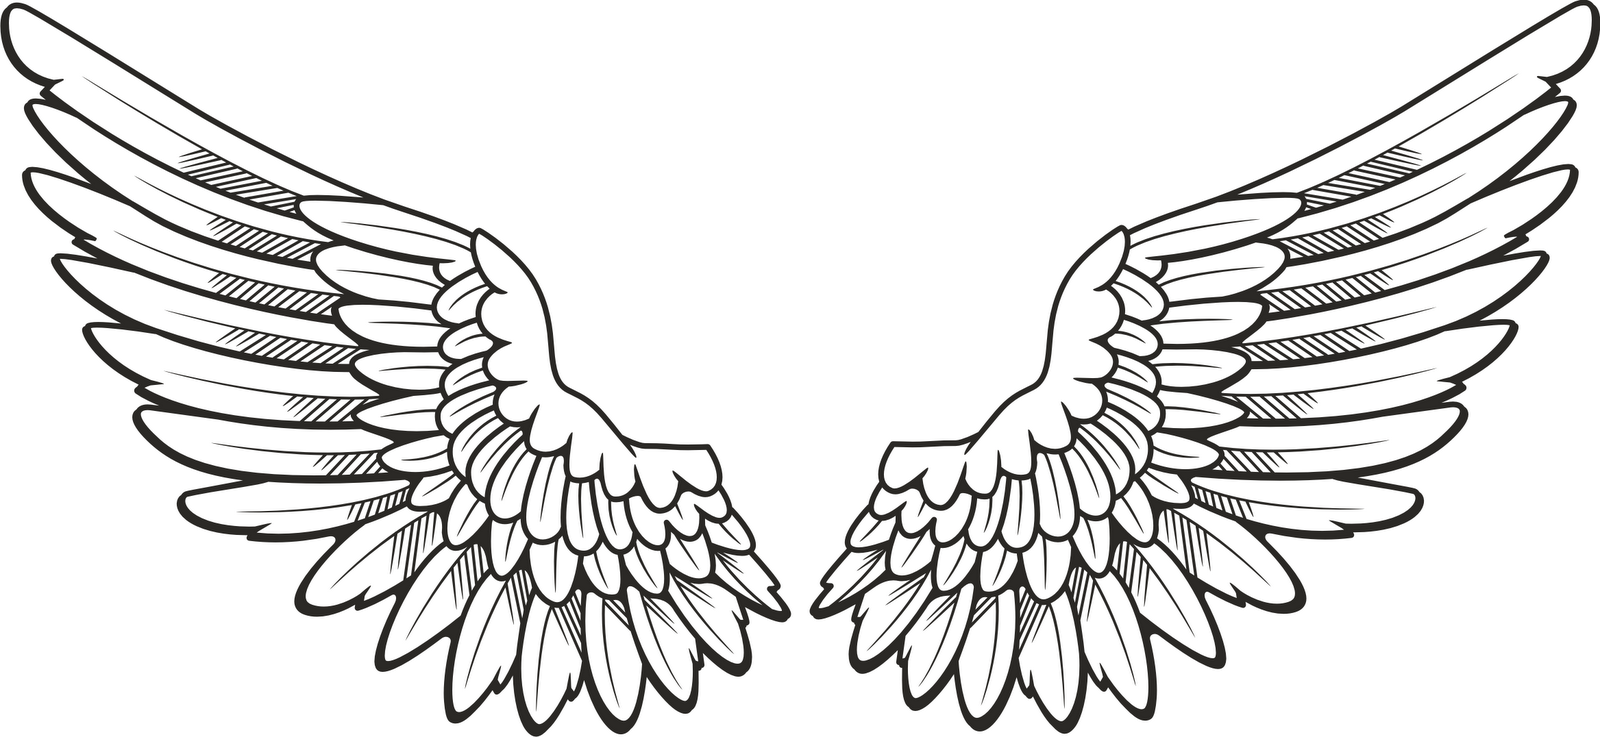 free angel wings with halo clip art - photo #25